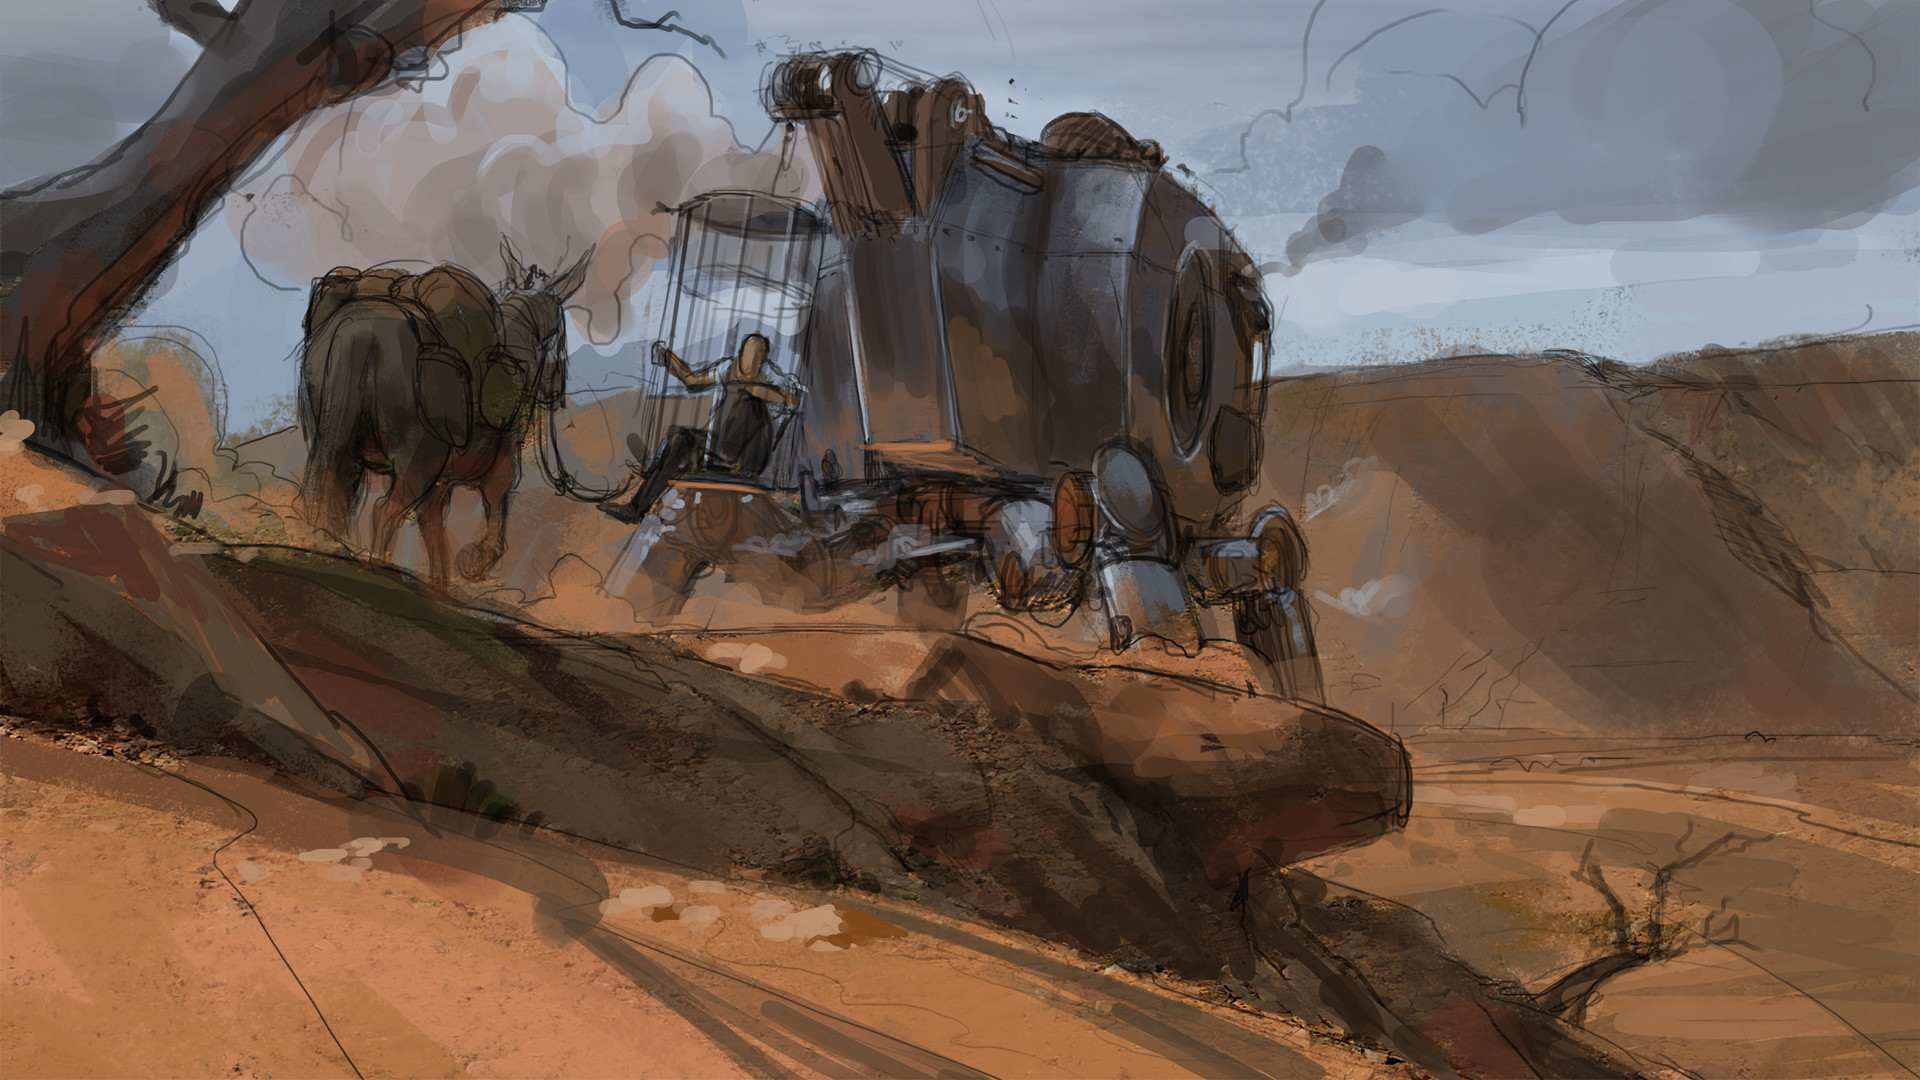 Klaus pillon cage mech imgar sketch 02